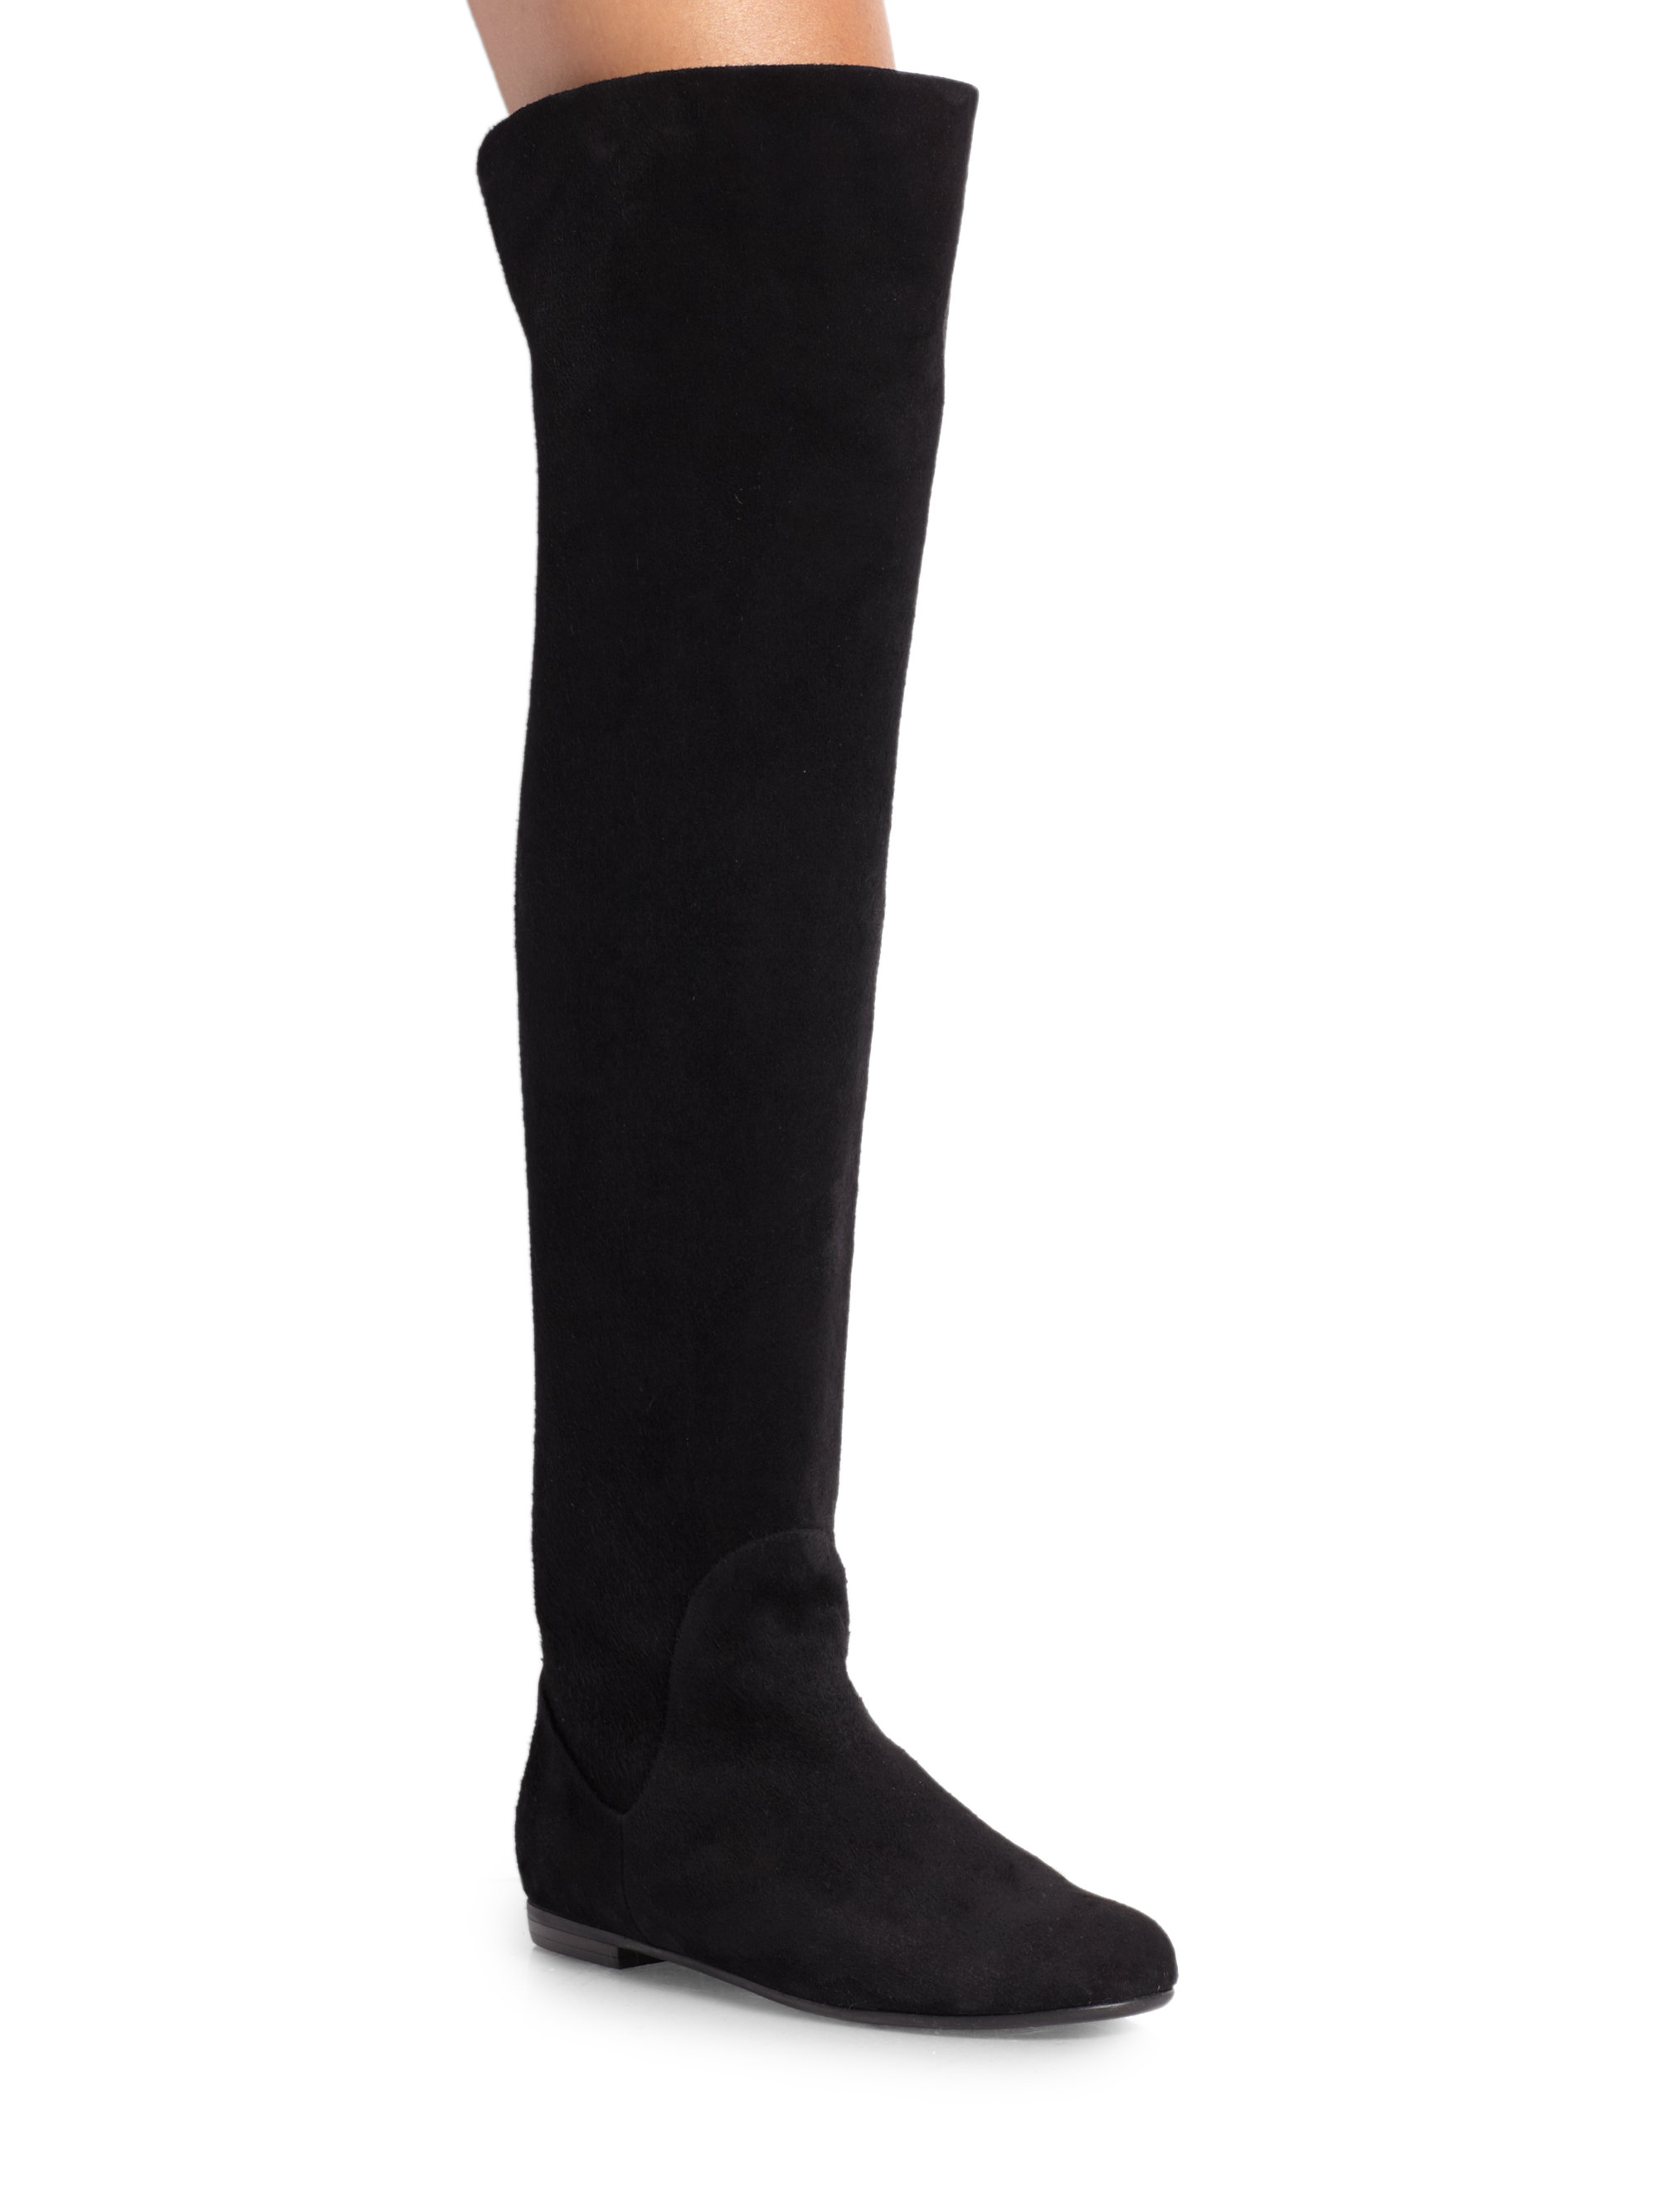 2b175a6dc5ff Lyst - Giuseppe Zanotti Suede Over-The-Knee Boots in Black